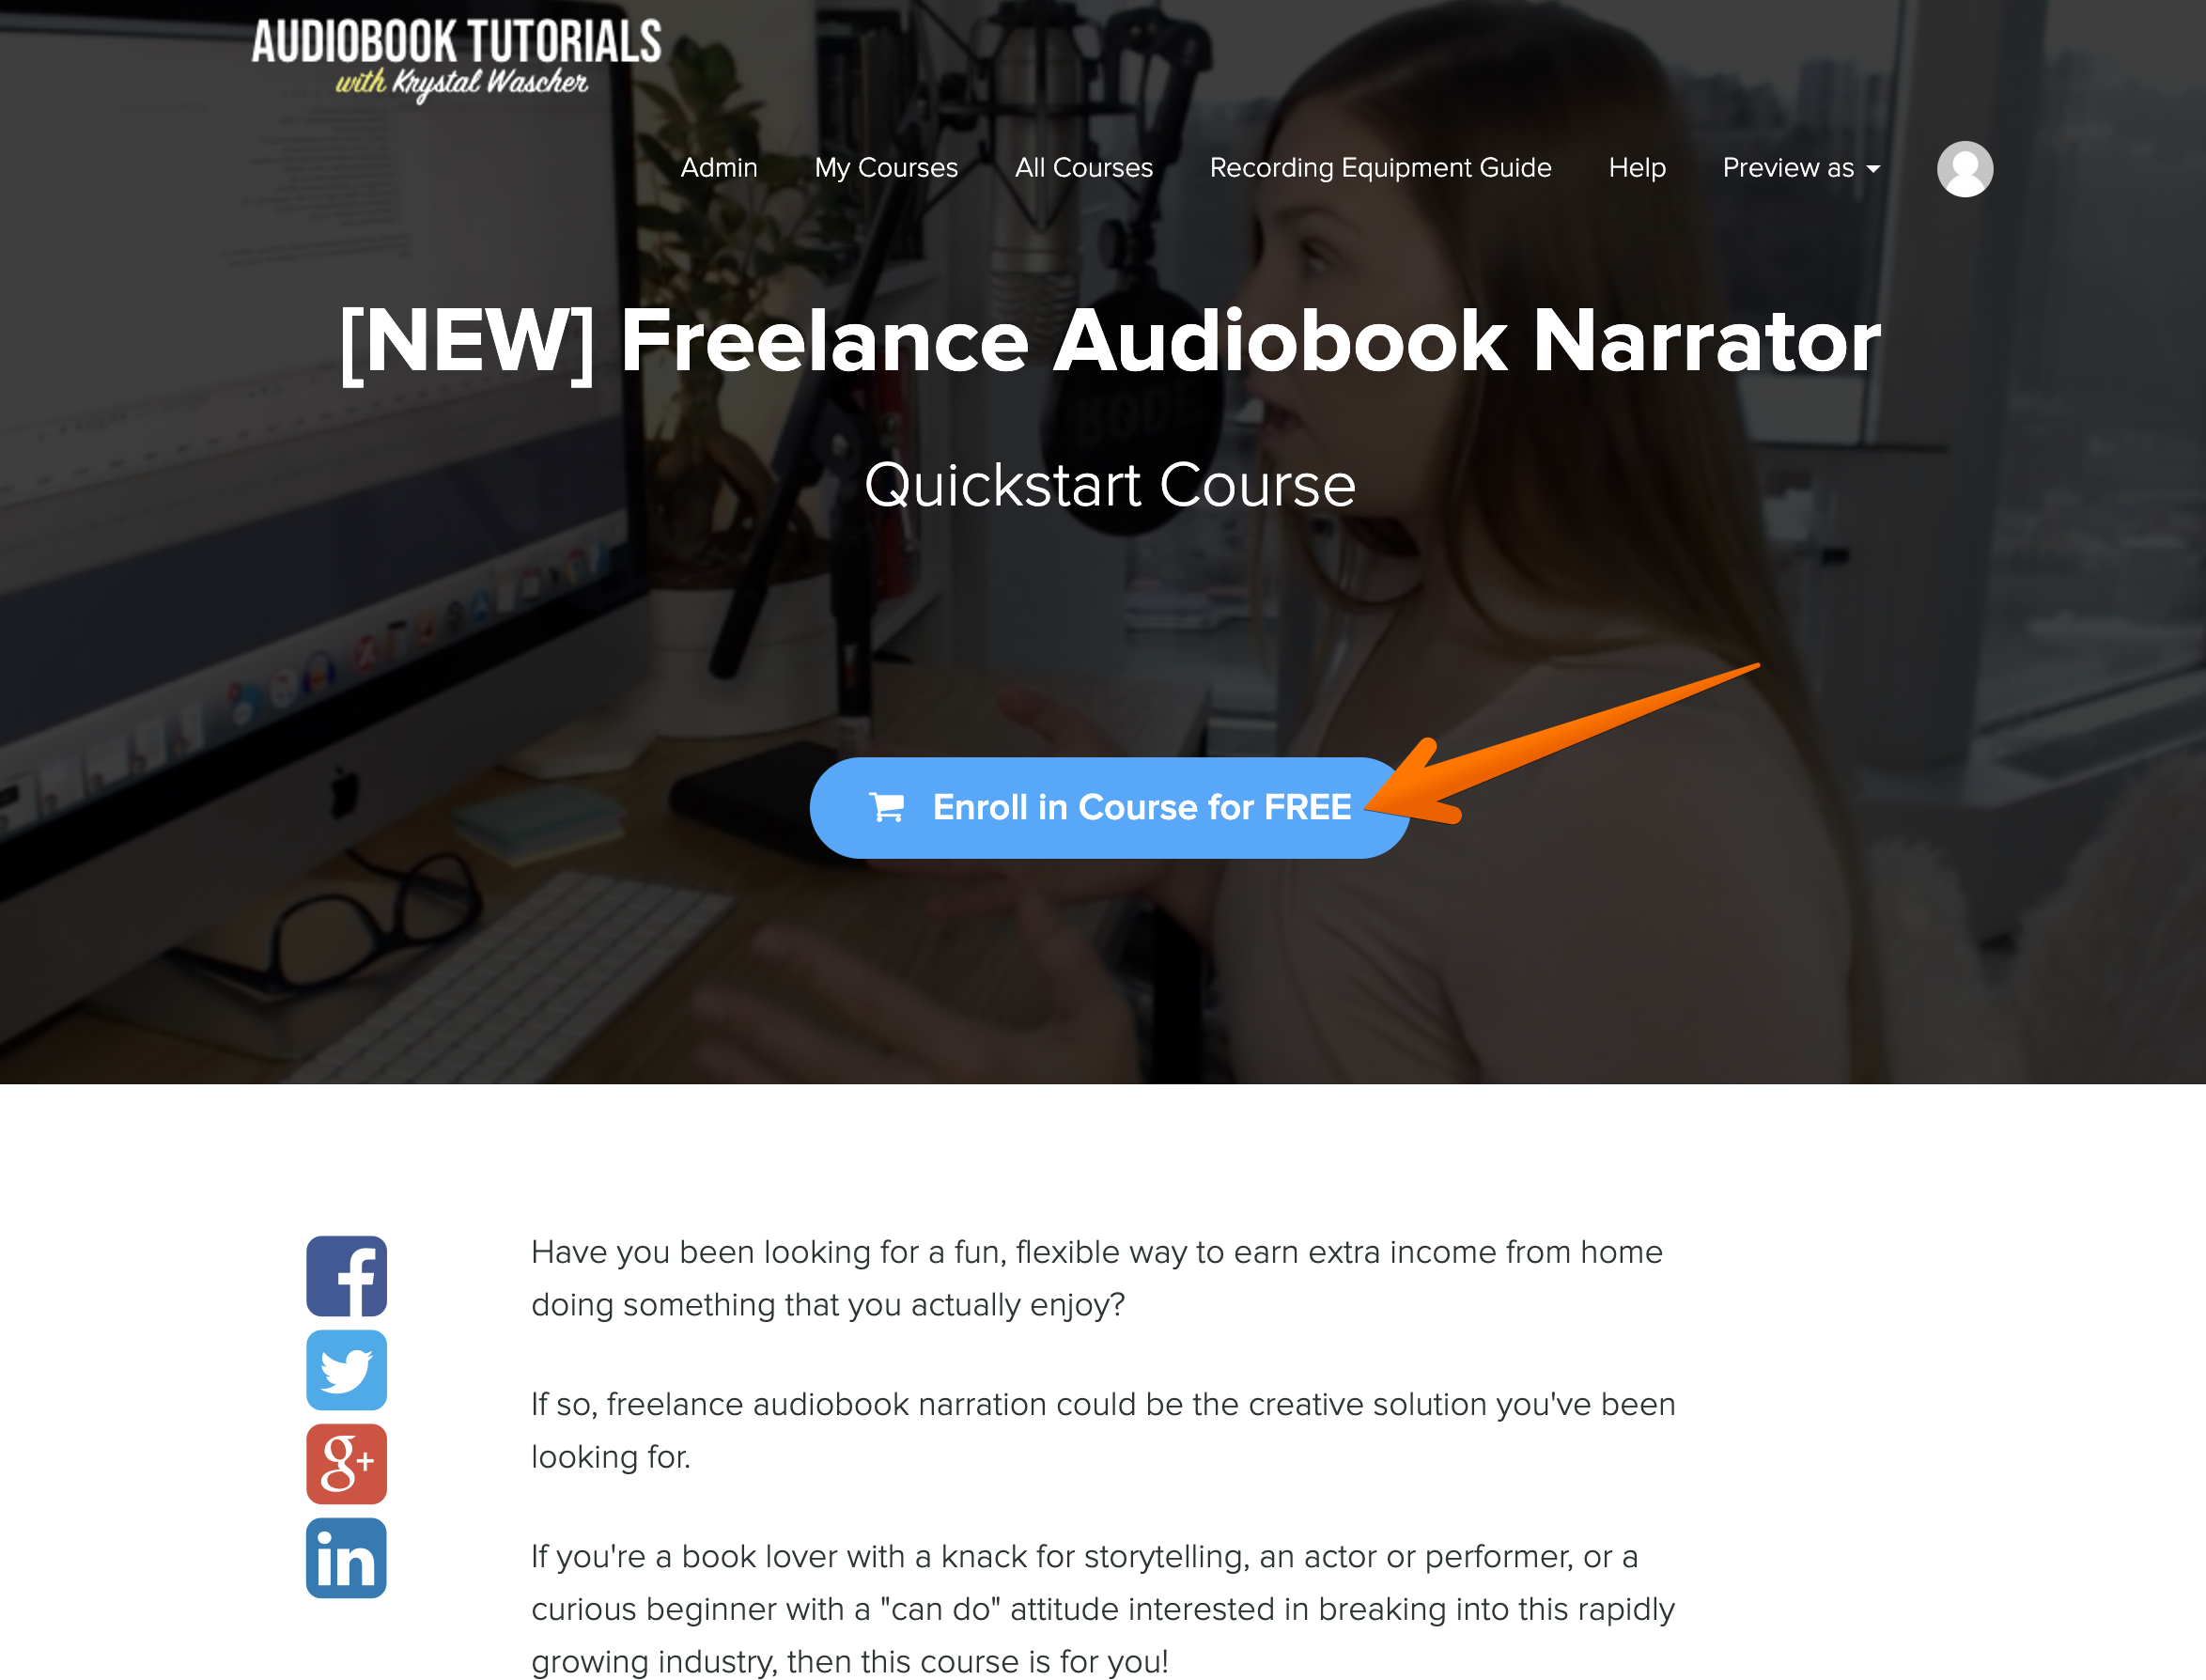 Freelance Audiobook Narrator Quickstart Course | Audiobook Tutorials 2019-05-10 16-04-28.jpg